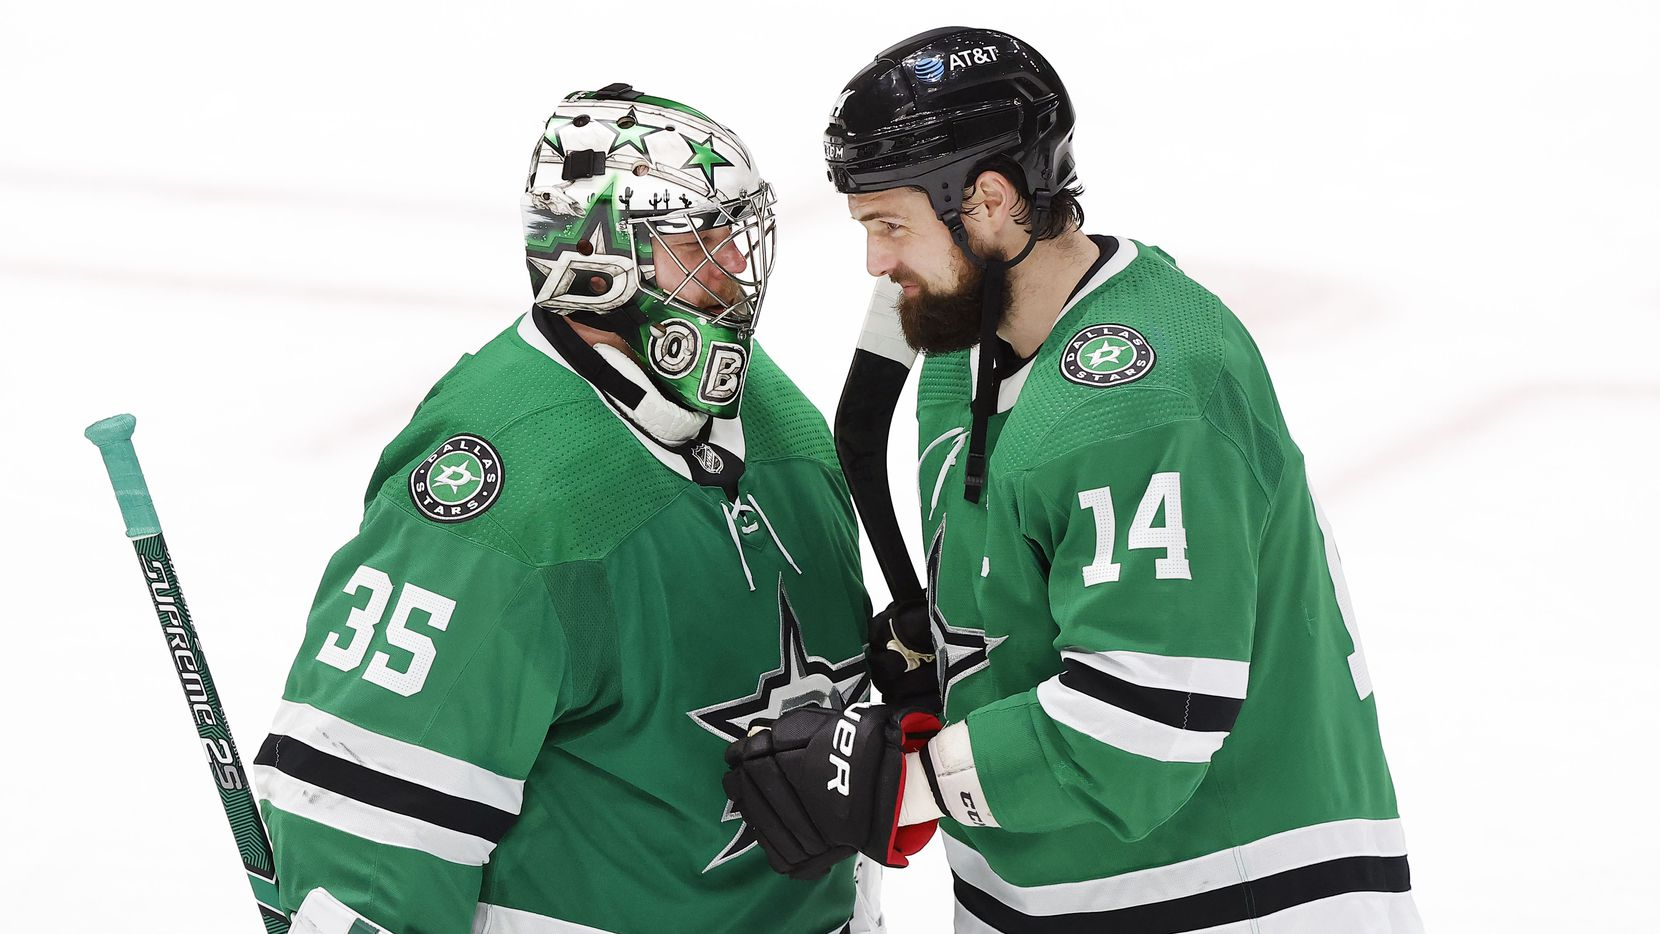 Dallas Stars left wing Jamie Benn (14) congratulates goaltender Anton Khudobin (35) on their win over the Chicago Blackhawks at the American Airlines Center in Dallas, Tuesday, March 9, 2021. The Stars defeated the Blackhawks, 6-1.